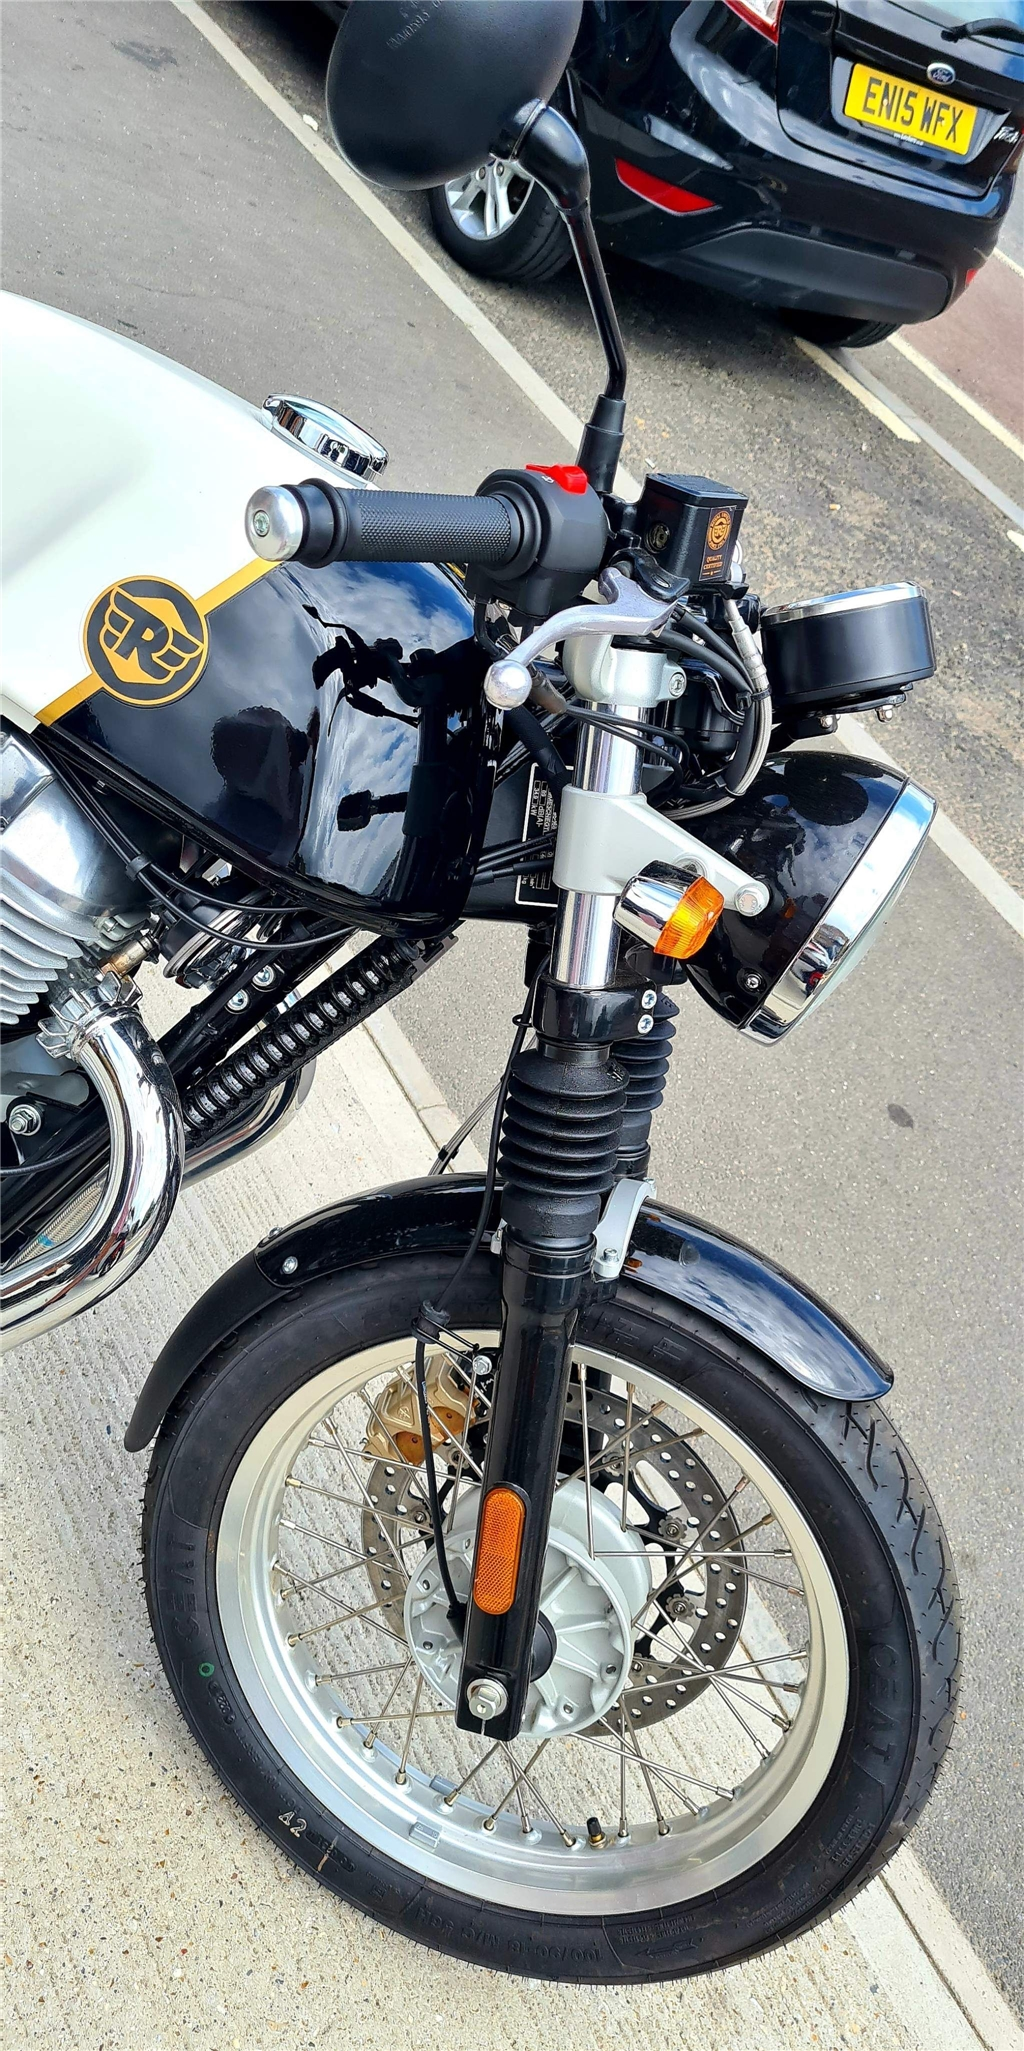 Royal Enfield Continental GT 650 Twin 650 Dual Colour ABS - Image 30